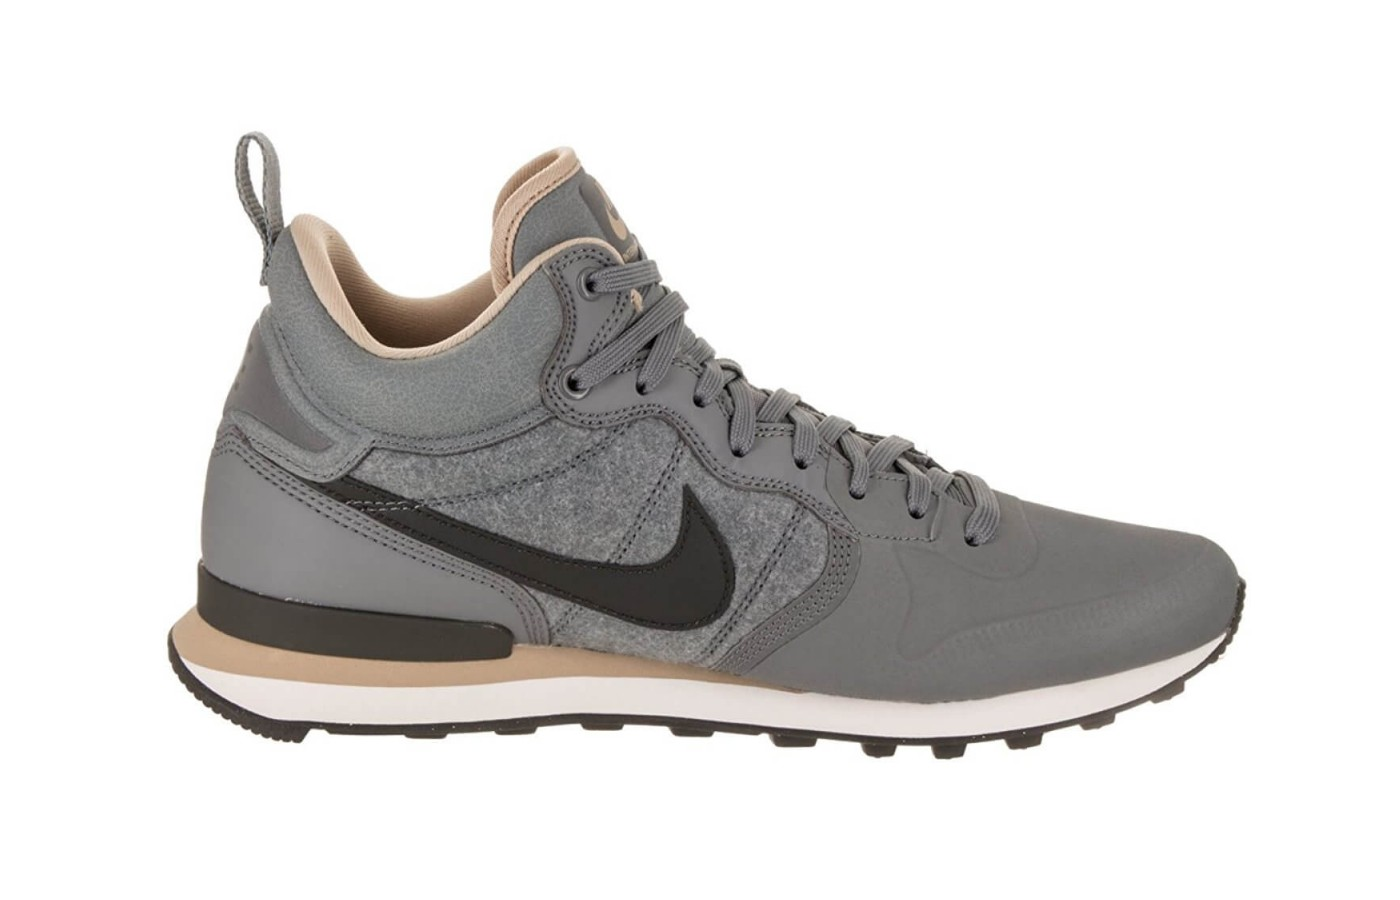 new concept 9b02f 48e40 ... The Nike Internationalist Utility is insulated and ready for colder  weather ...